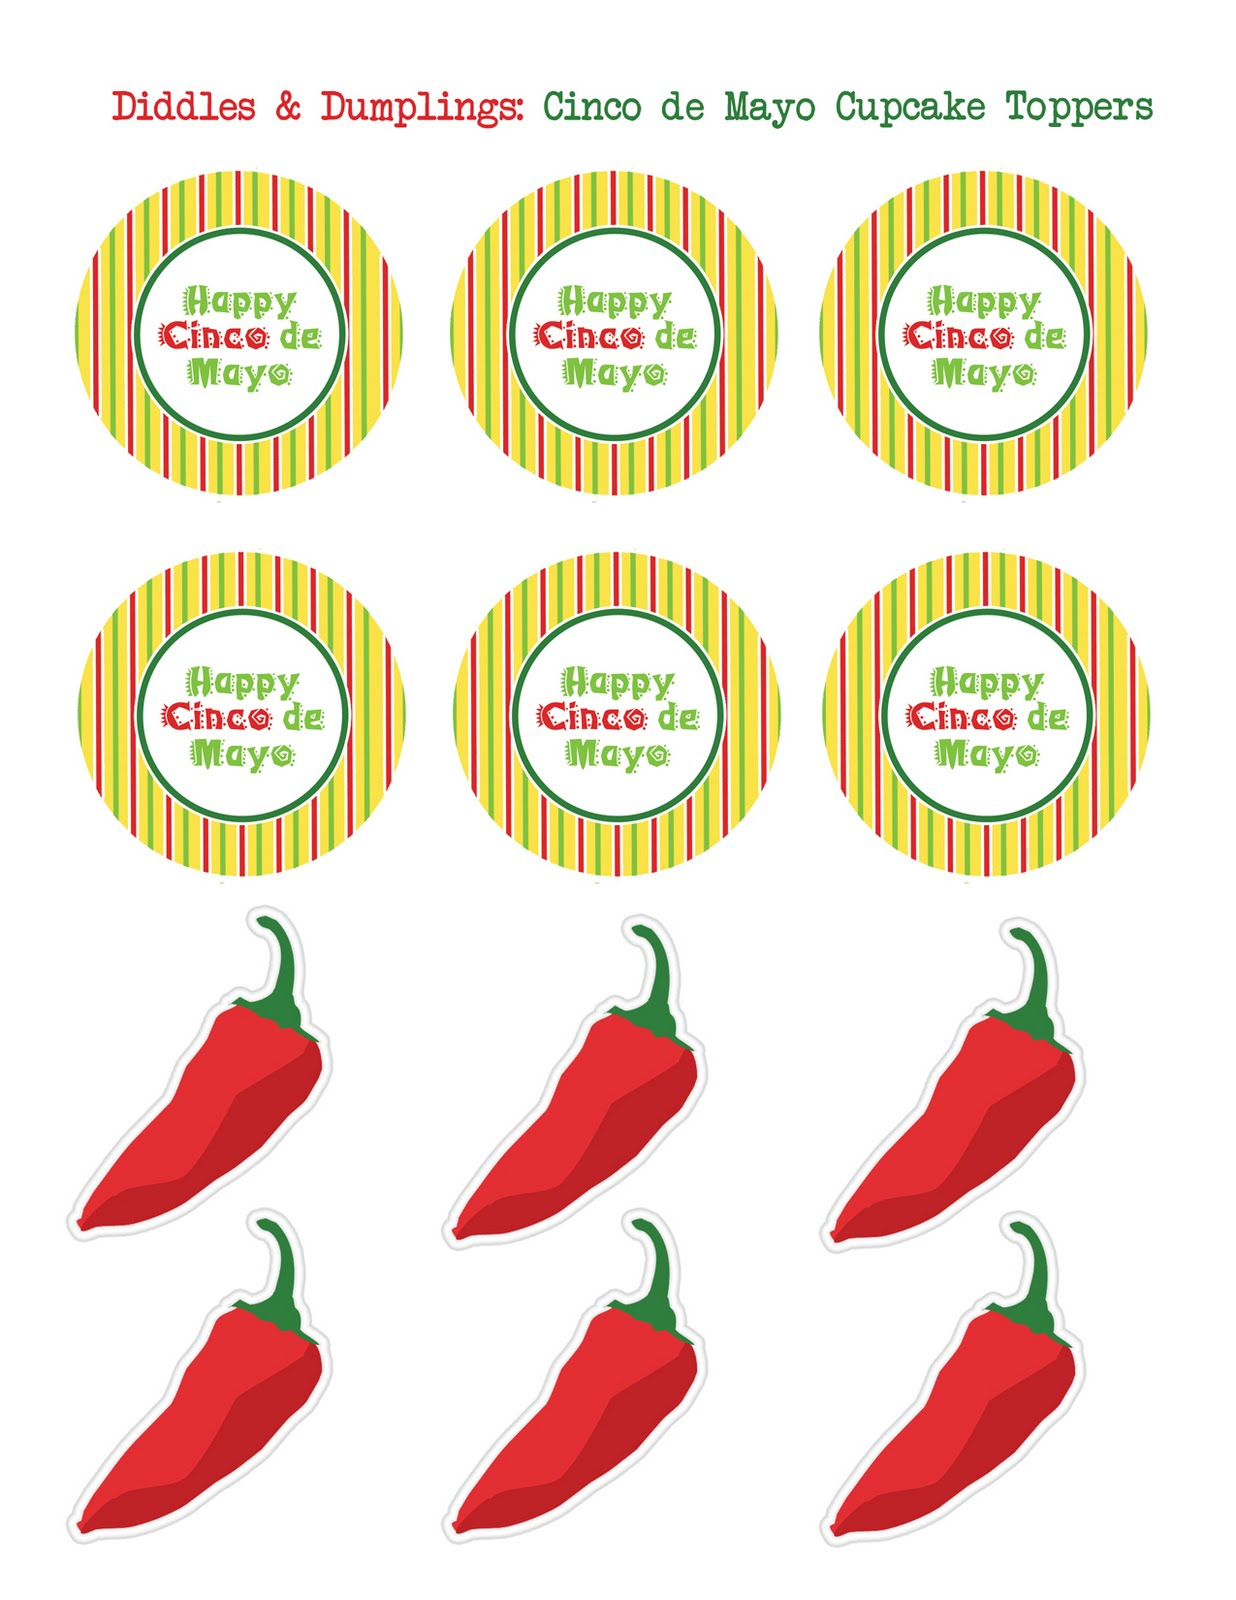 1236x1600 Diddles And Dumplings Cinco De Mayo Printable Cupcake Toppers